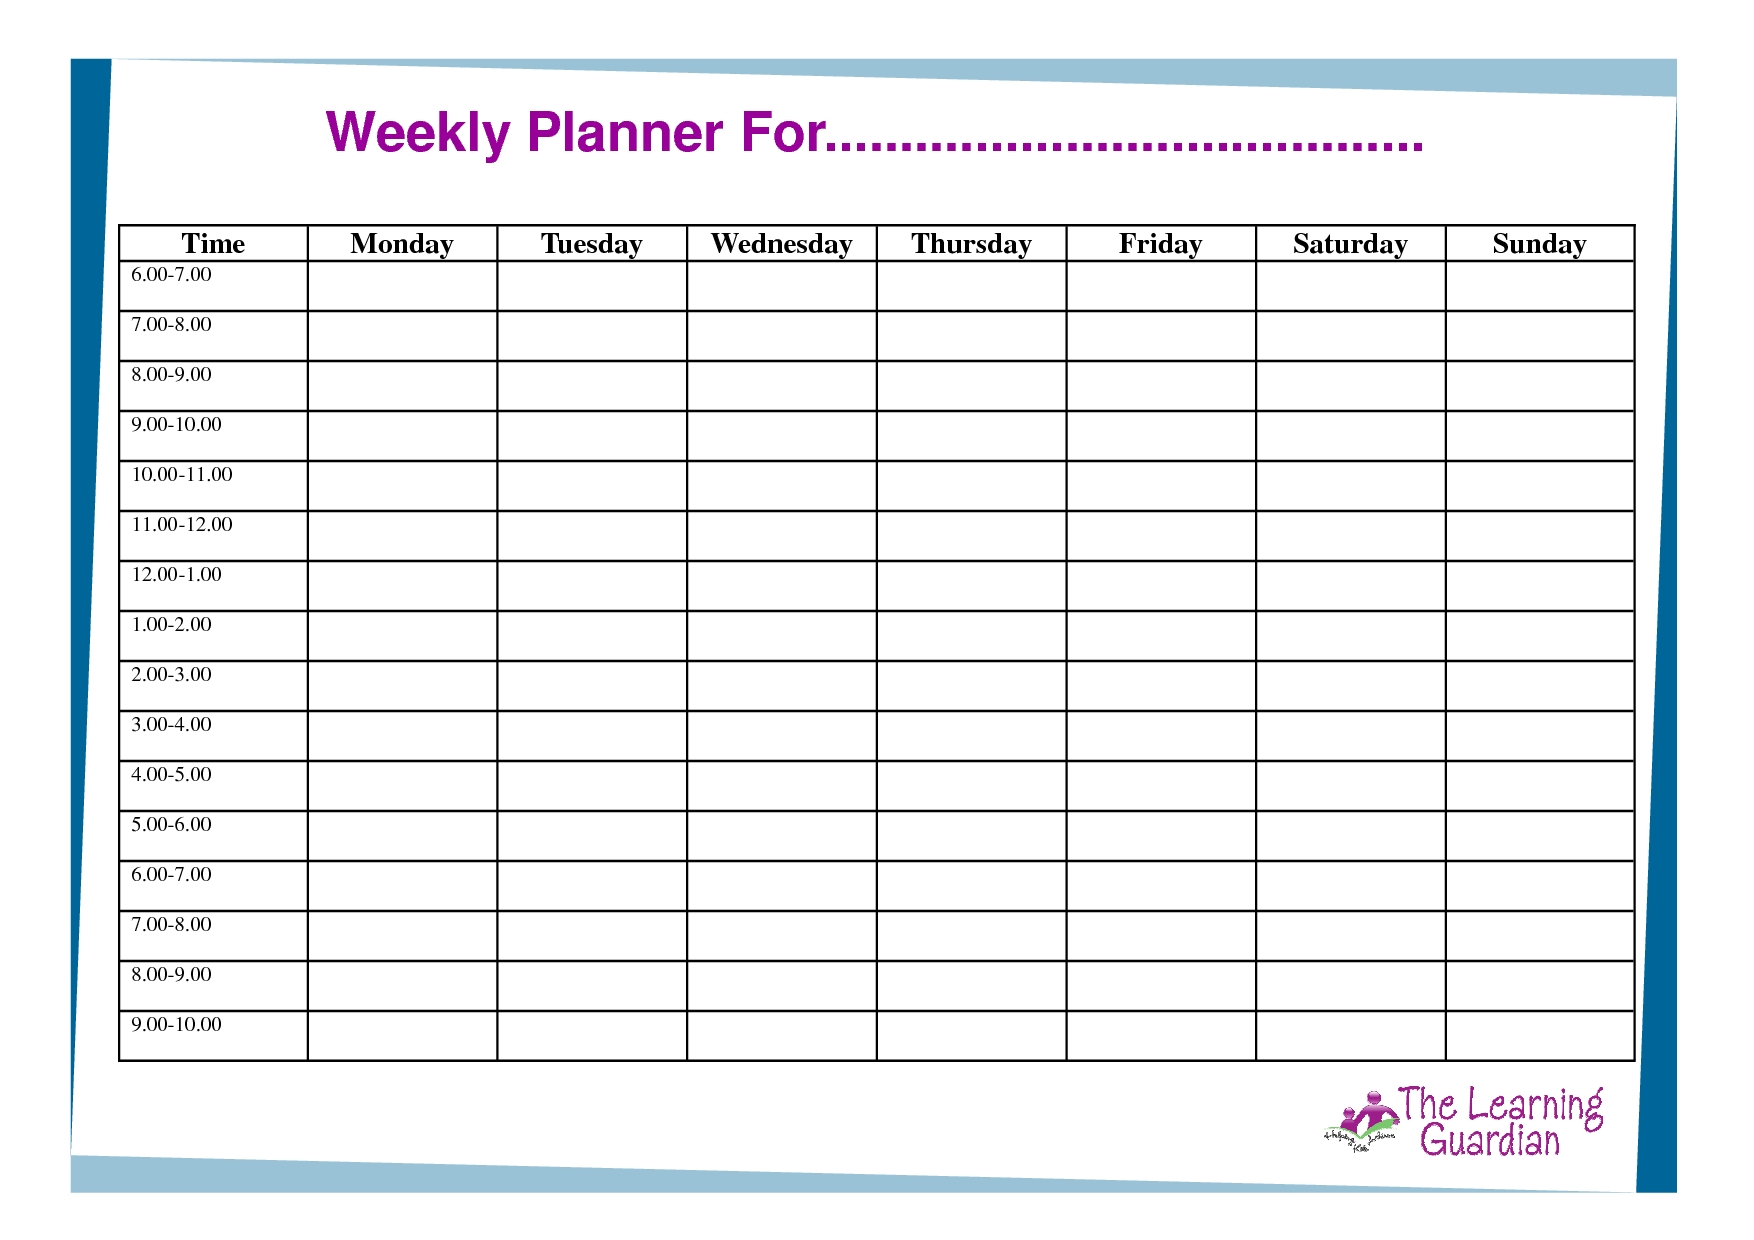 Free+Printable+Weekly+Planner+Templates In 2020 | Weekly intended for Monsay Through Friday Calneder With Times